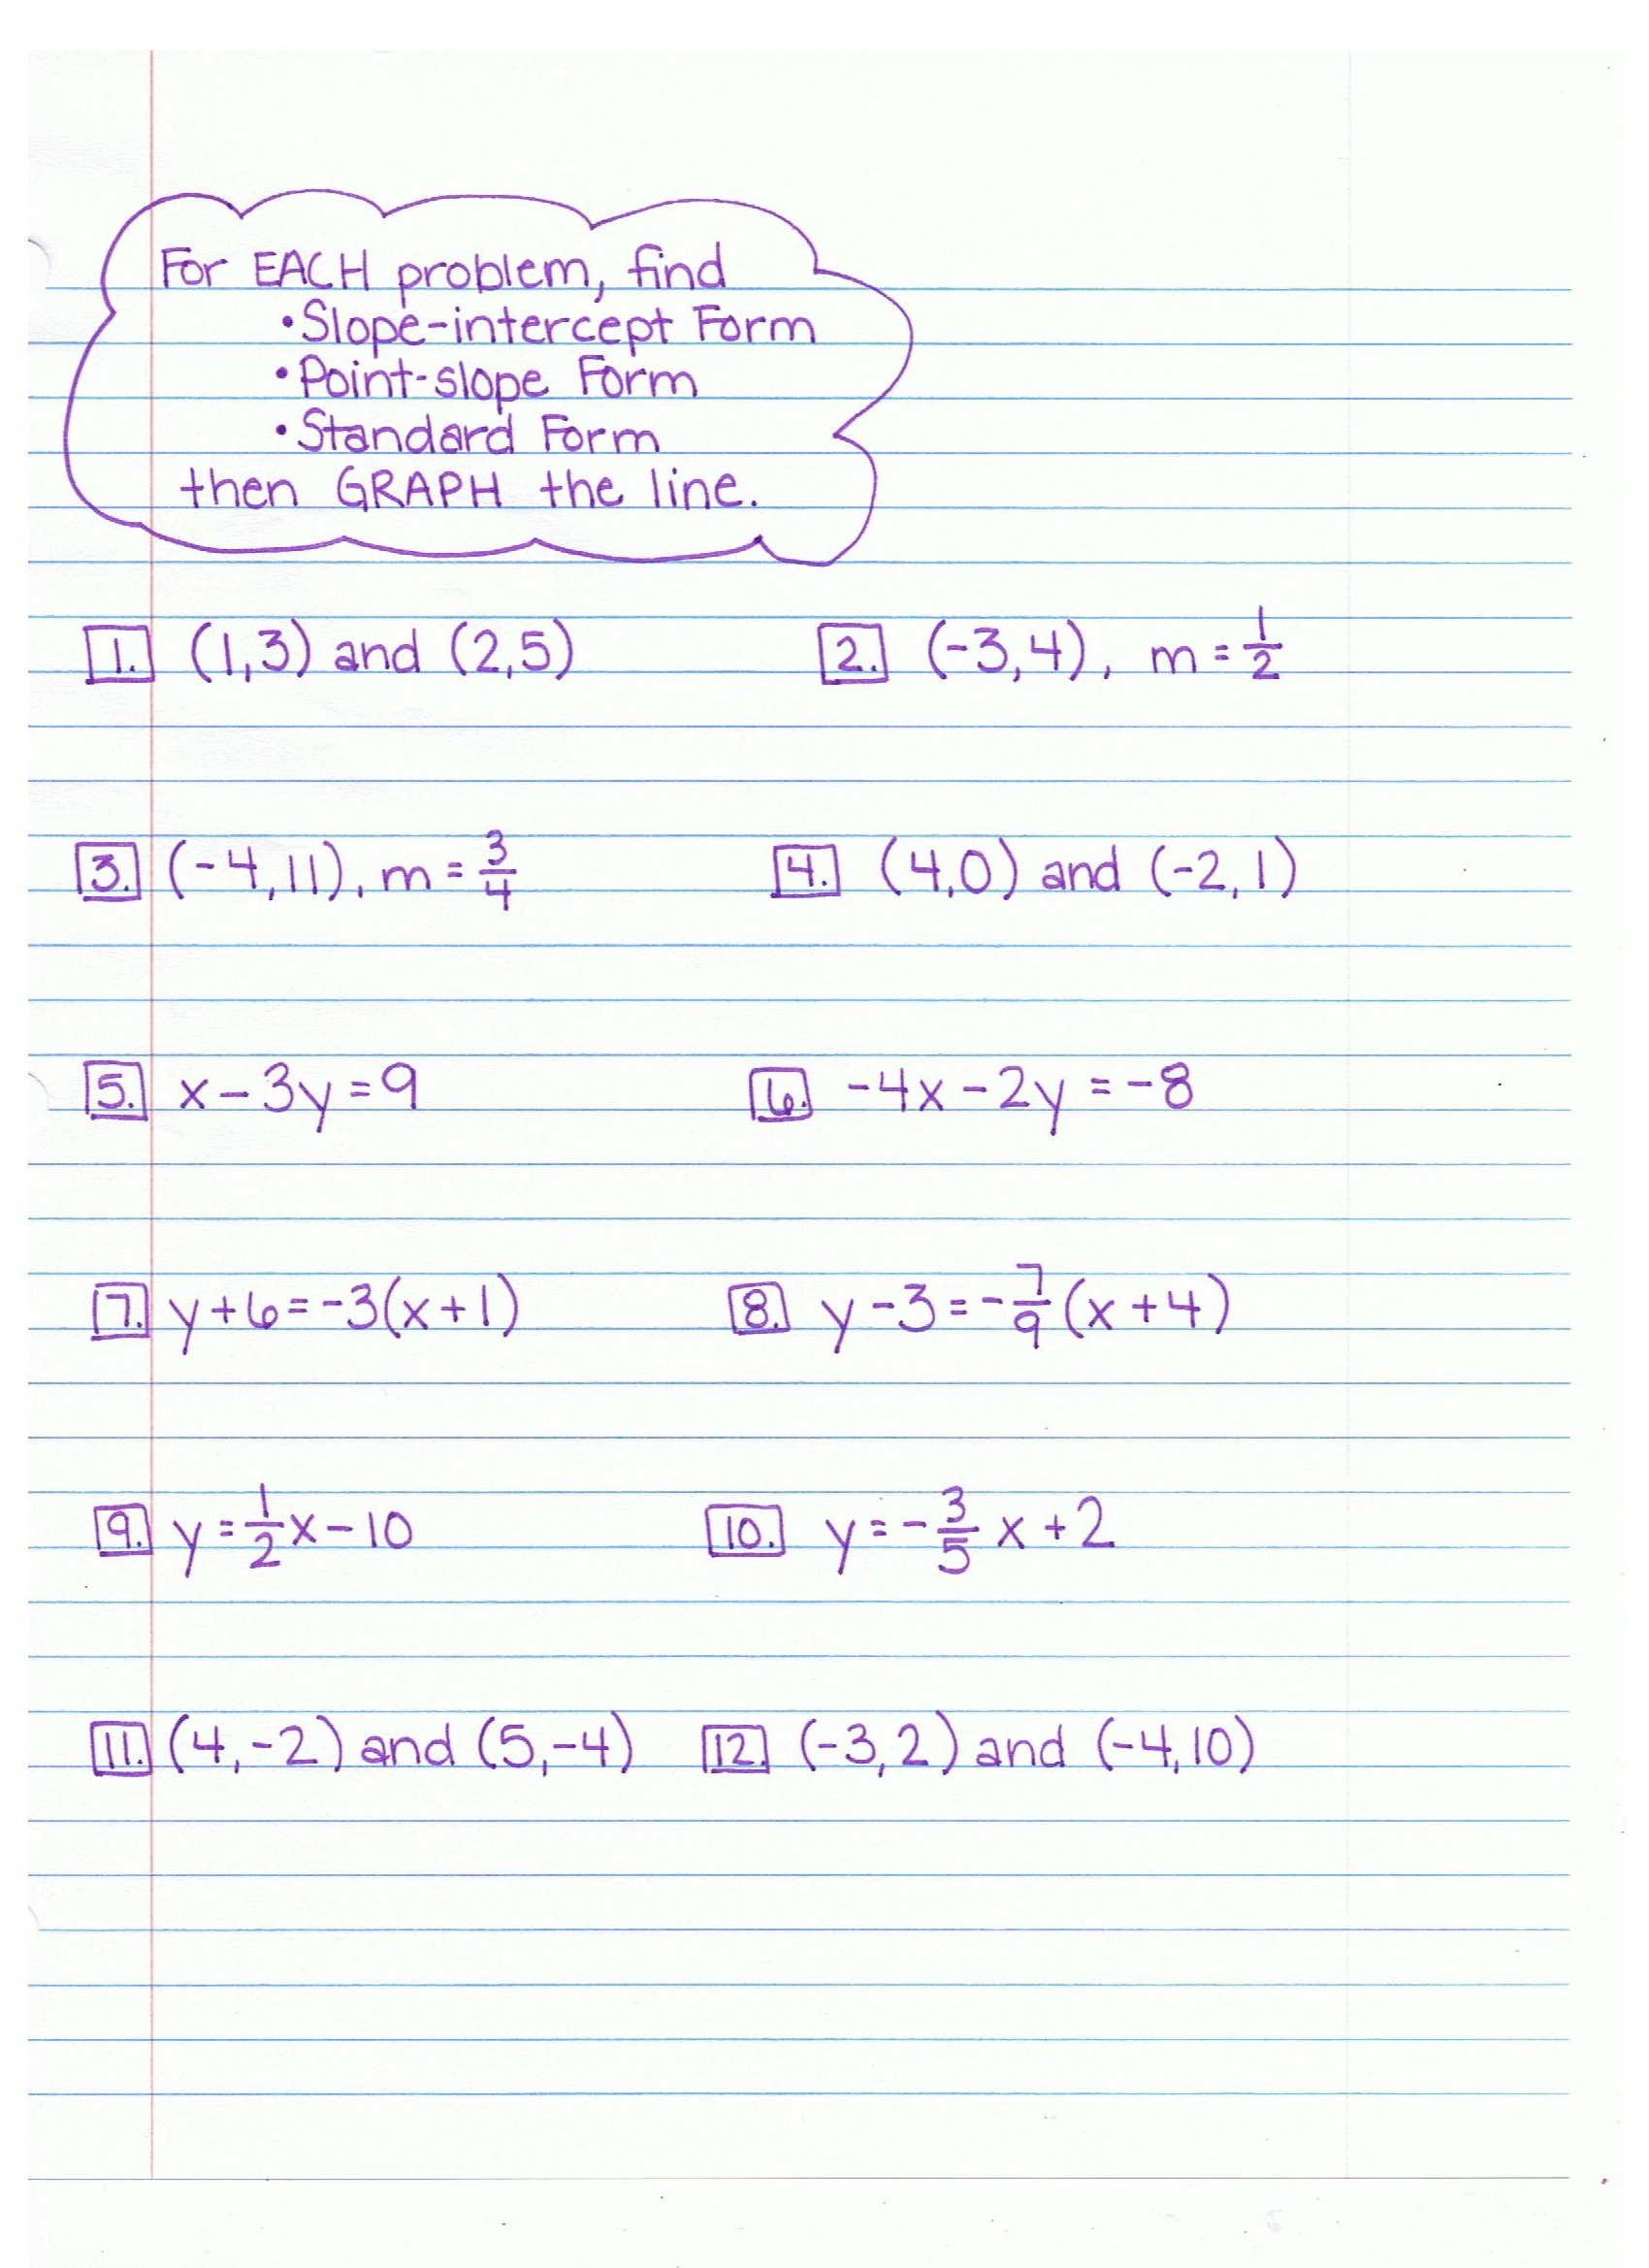 Slope Intercept Form Worksheet Answer Key Free Worksheets Library – Algebra 1 Slope Intercept Form Worksheet